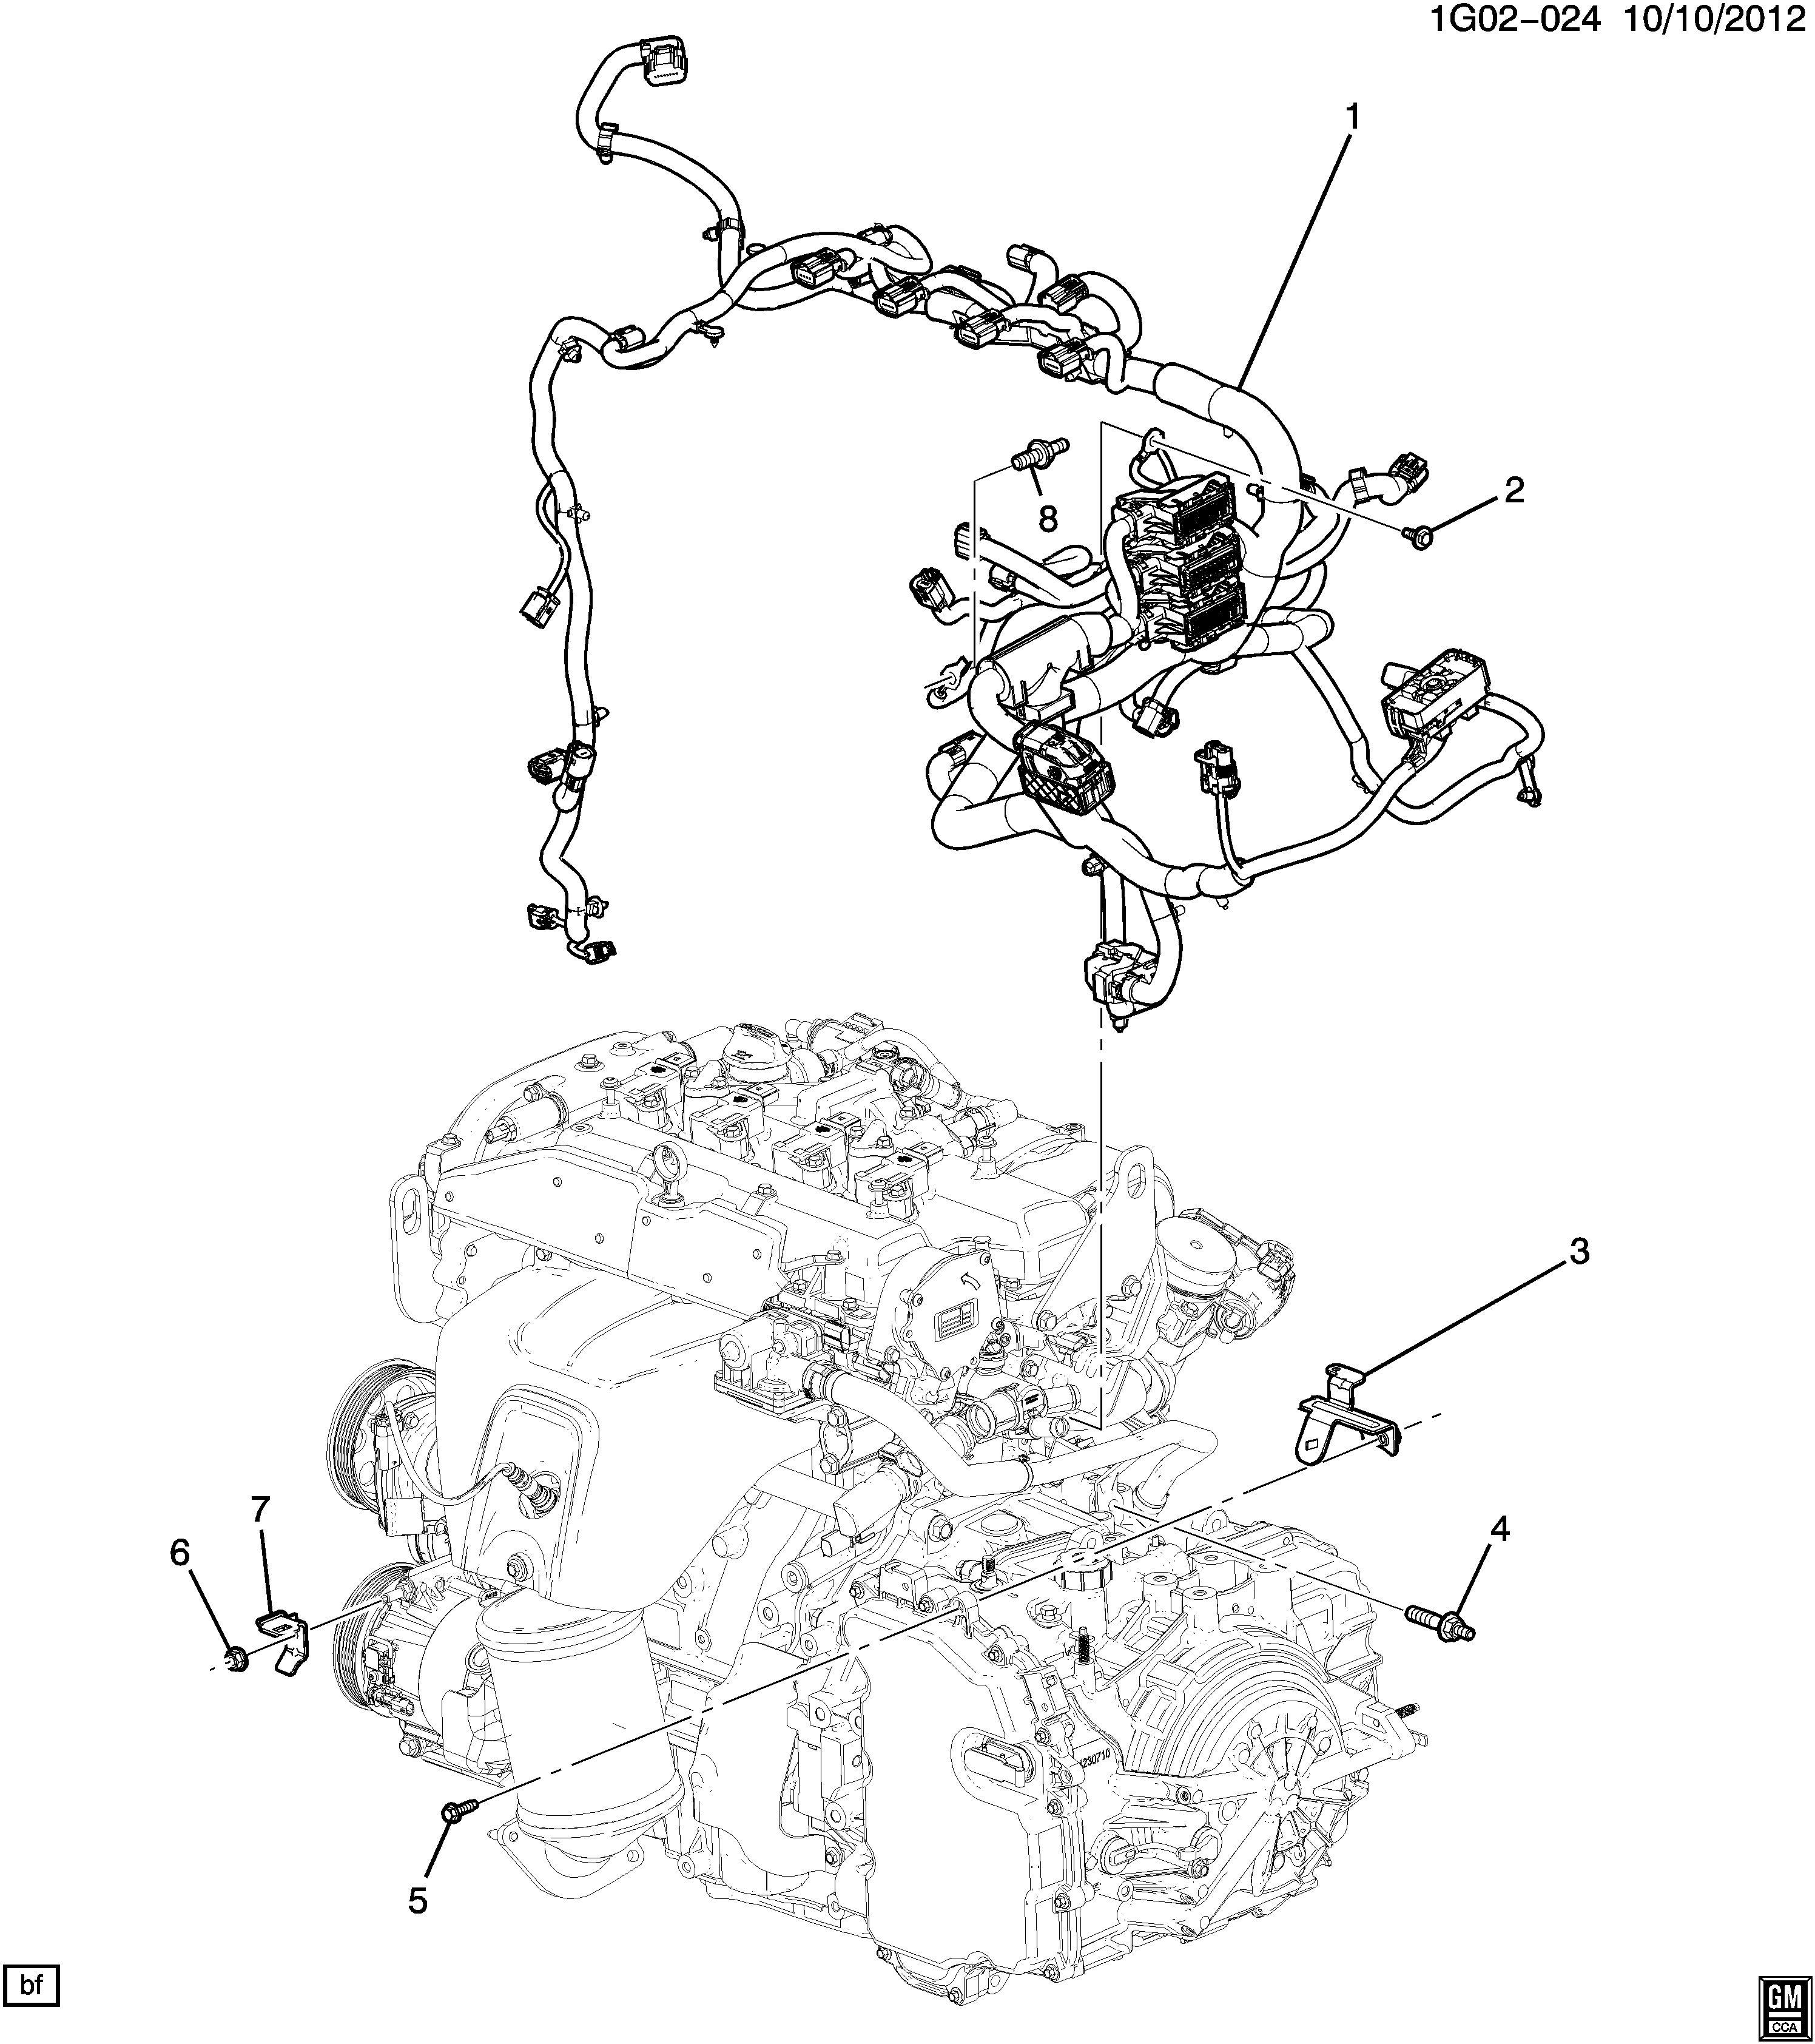 22822678 - Gm Harness Assembly